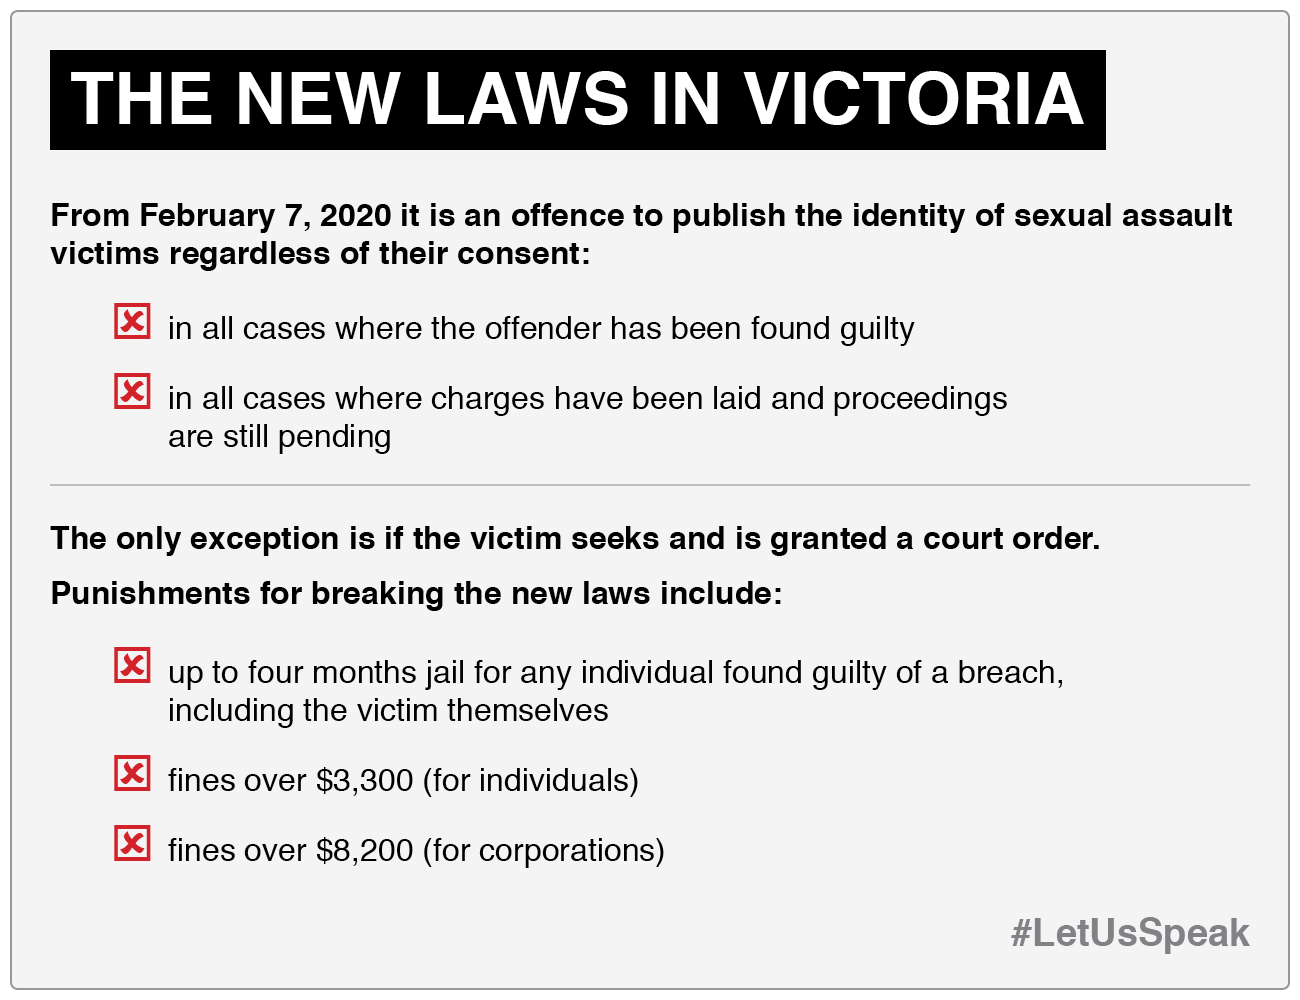 NED-2154-The-new-laws-in-Victoria - 0